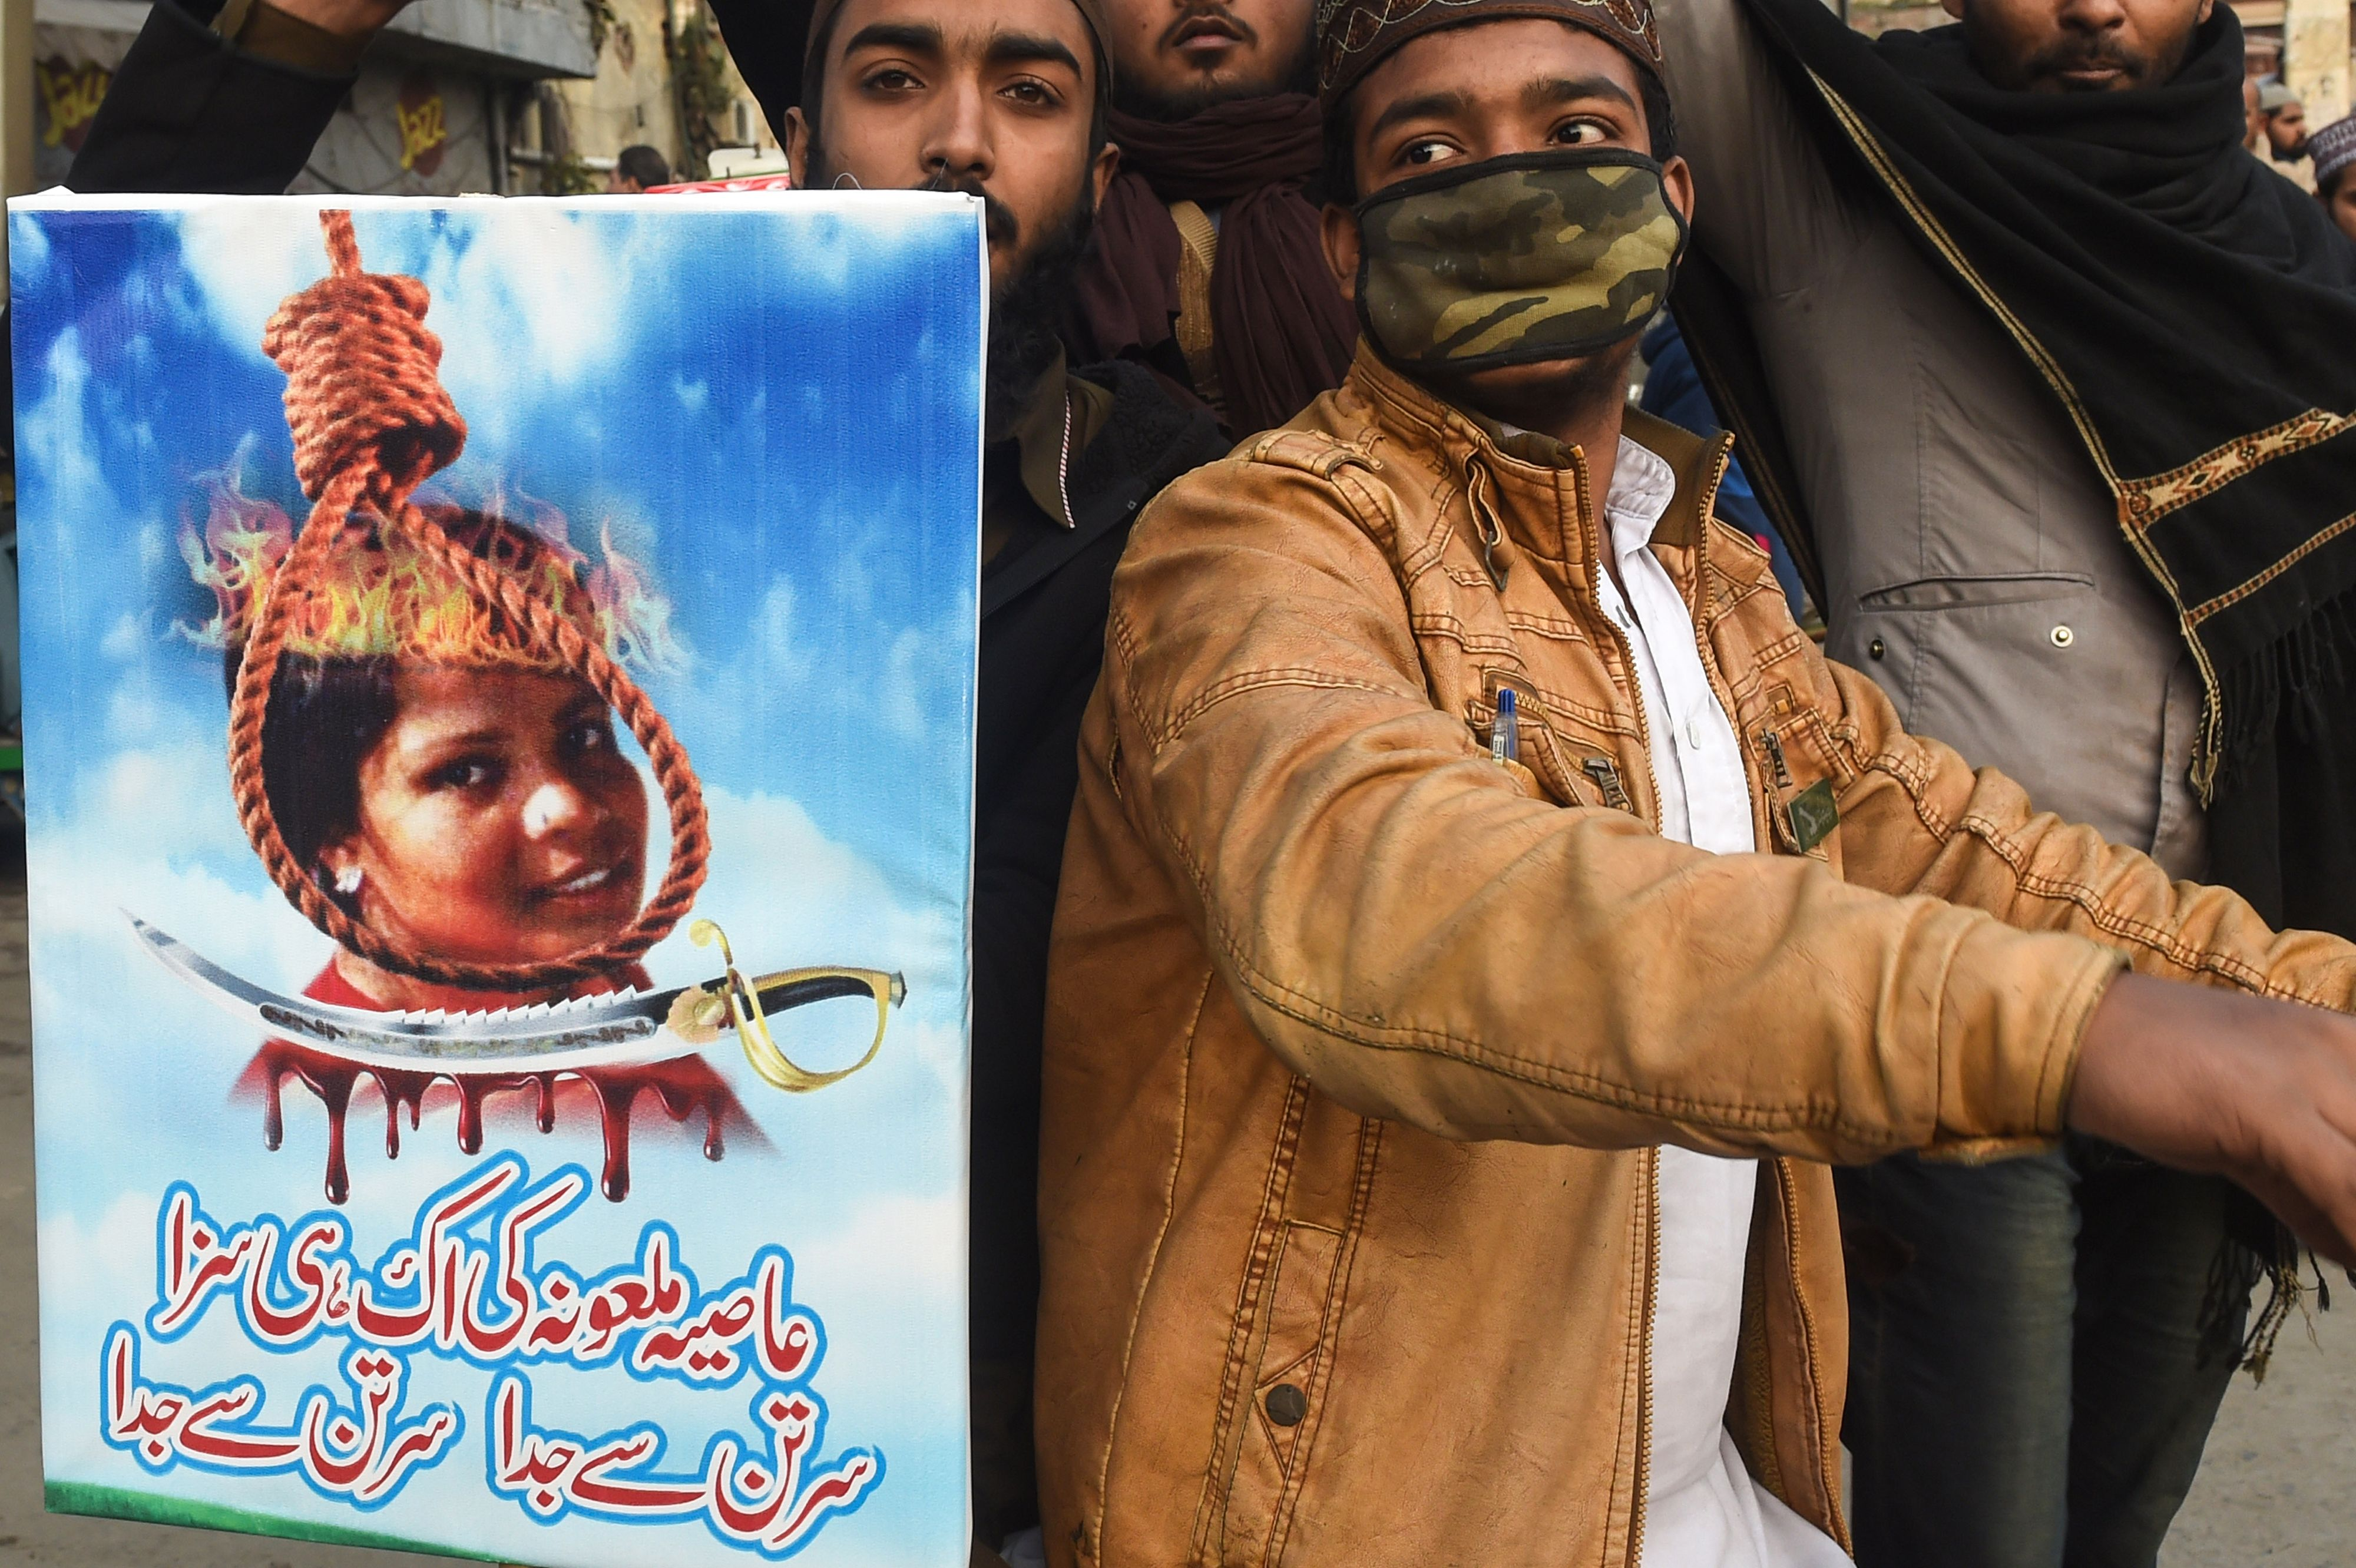 Pakistani Islamists hold a poster displaying the portrait of Asia Bibi, a Christian Pakistani woman accused of blasphemy, during a protest against the Supreme Court decision on Bibi's case in Lahore on February 1, 2019. (Photo by ARIF ALI/AFP/Getty Images)